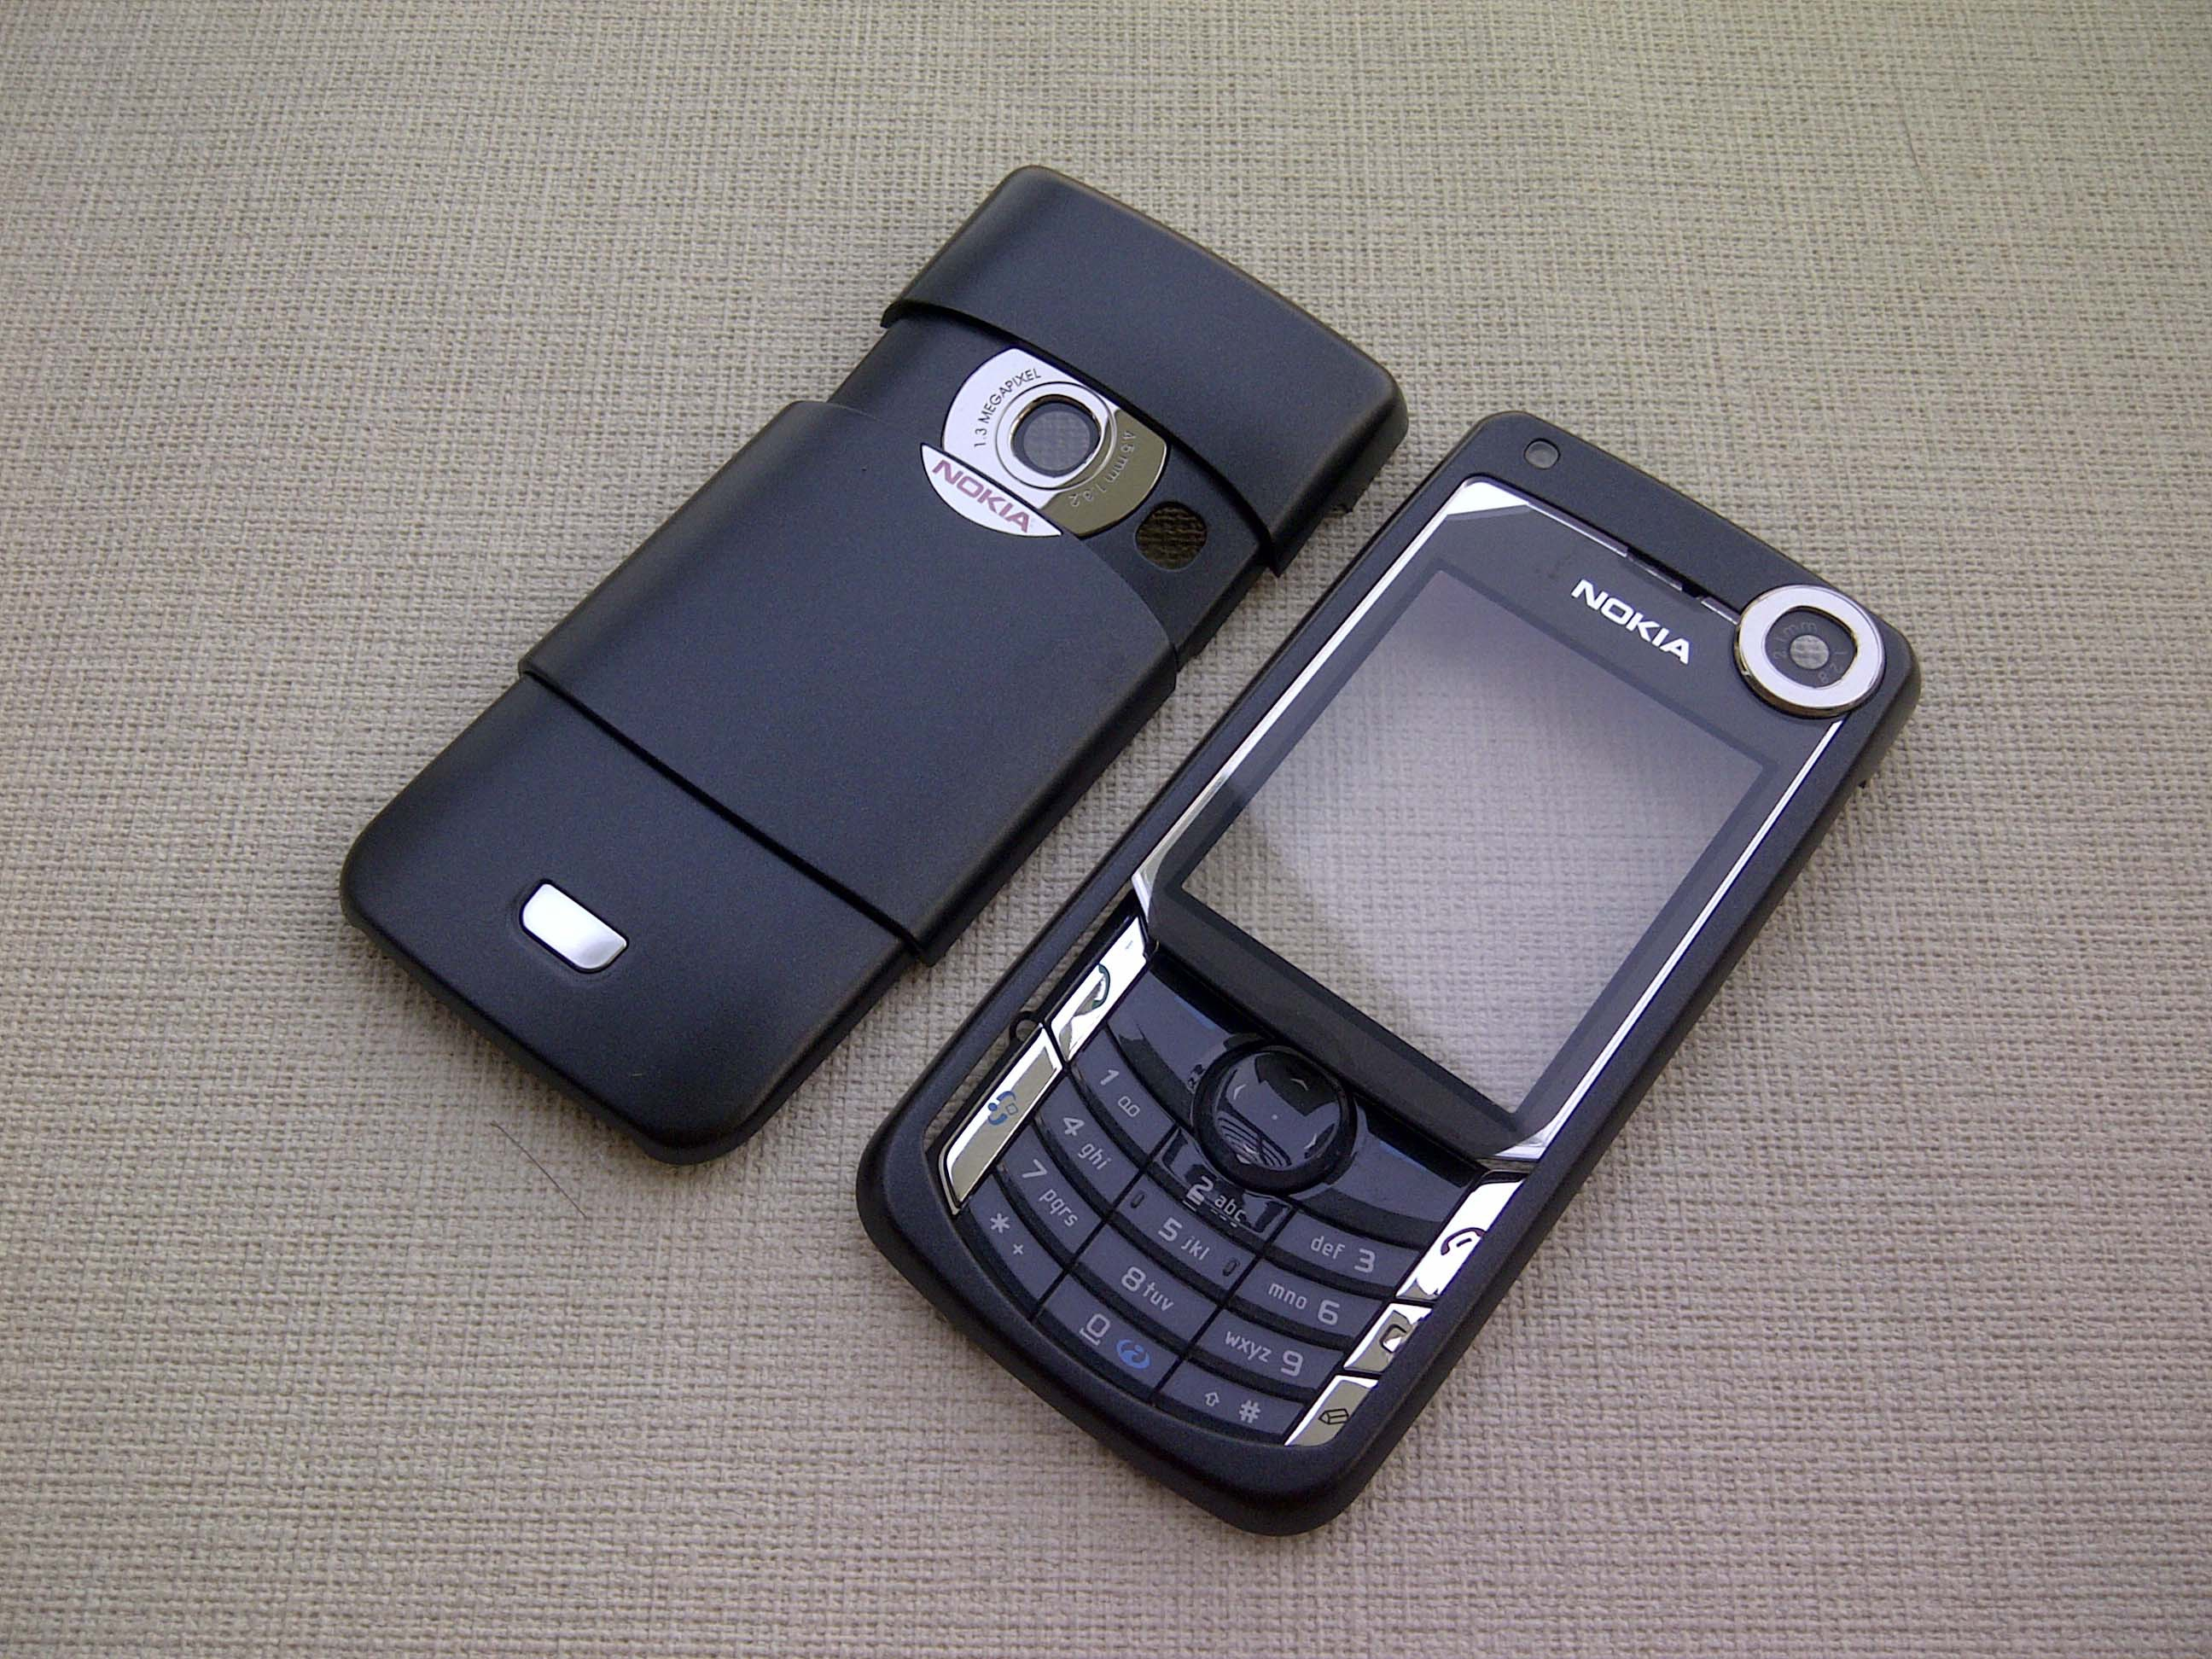 Pictures Of Nokia